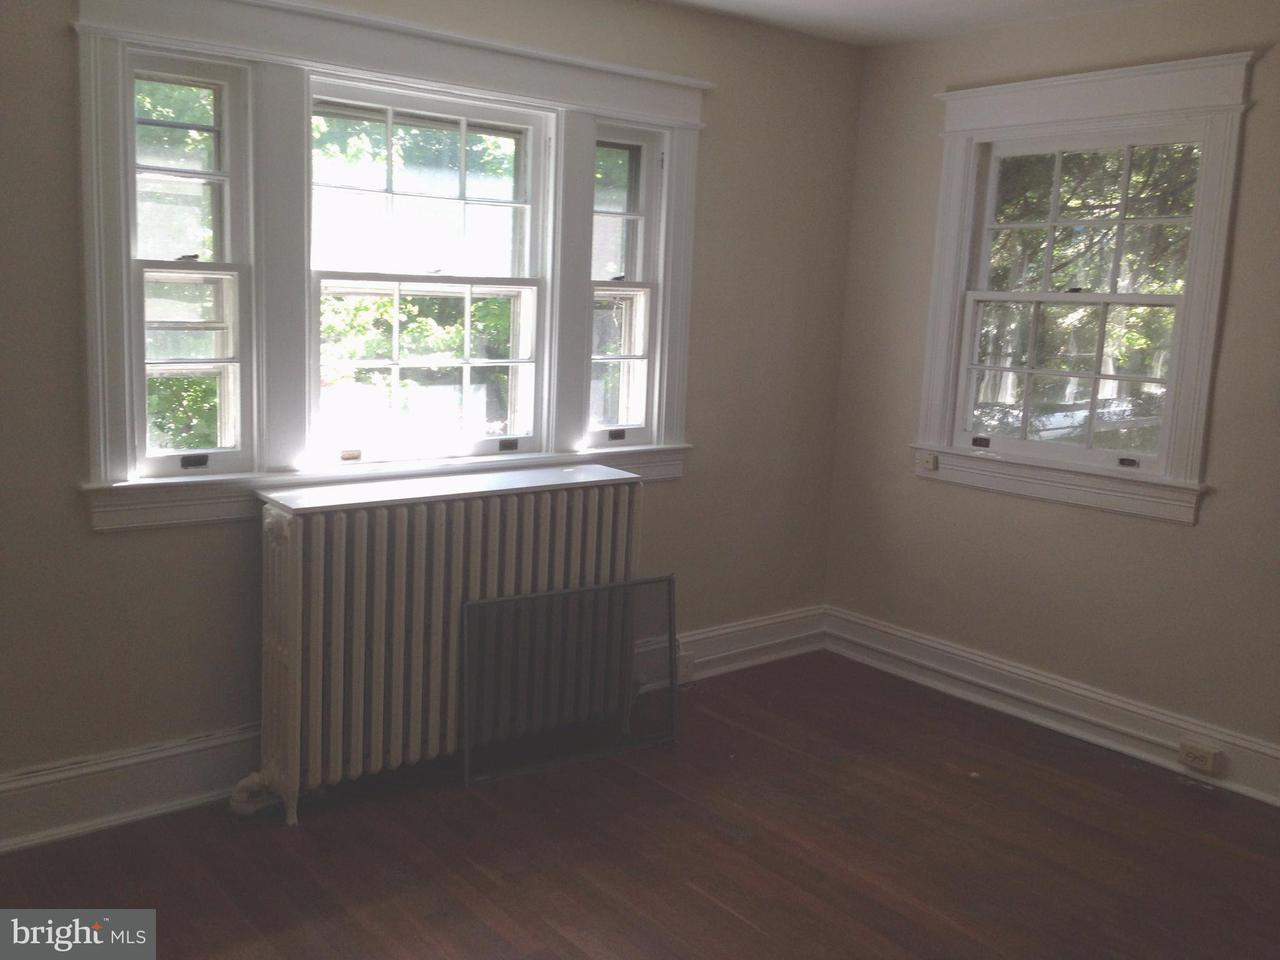 Additional photo for property listing at 2933 Ordway St NW  Washington, District Of Columbia 20008 United States